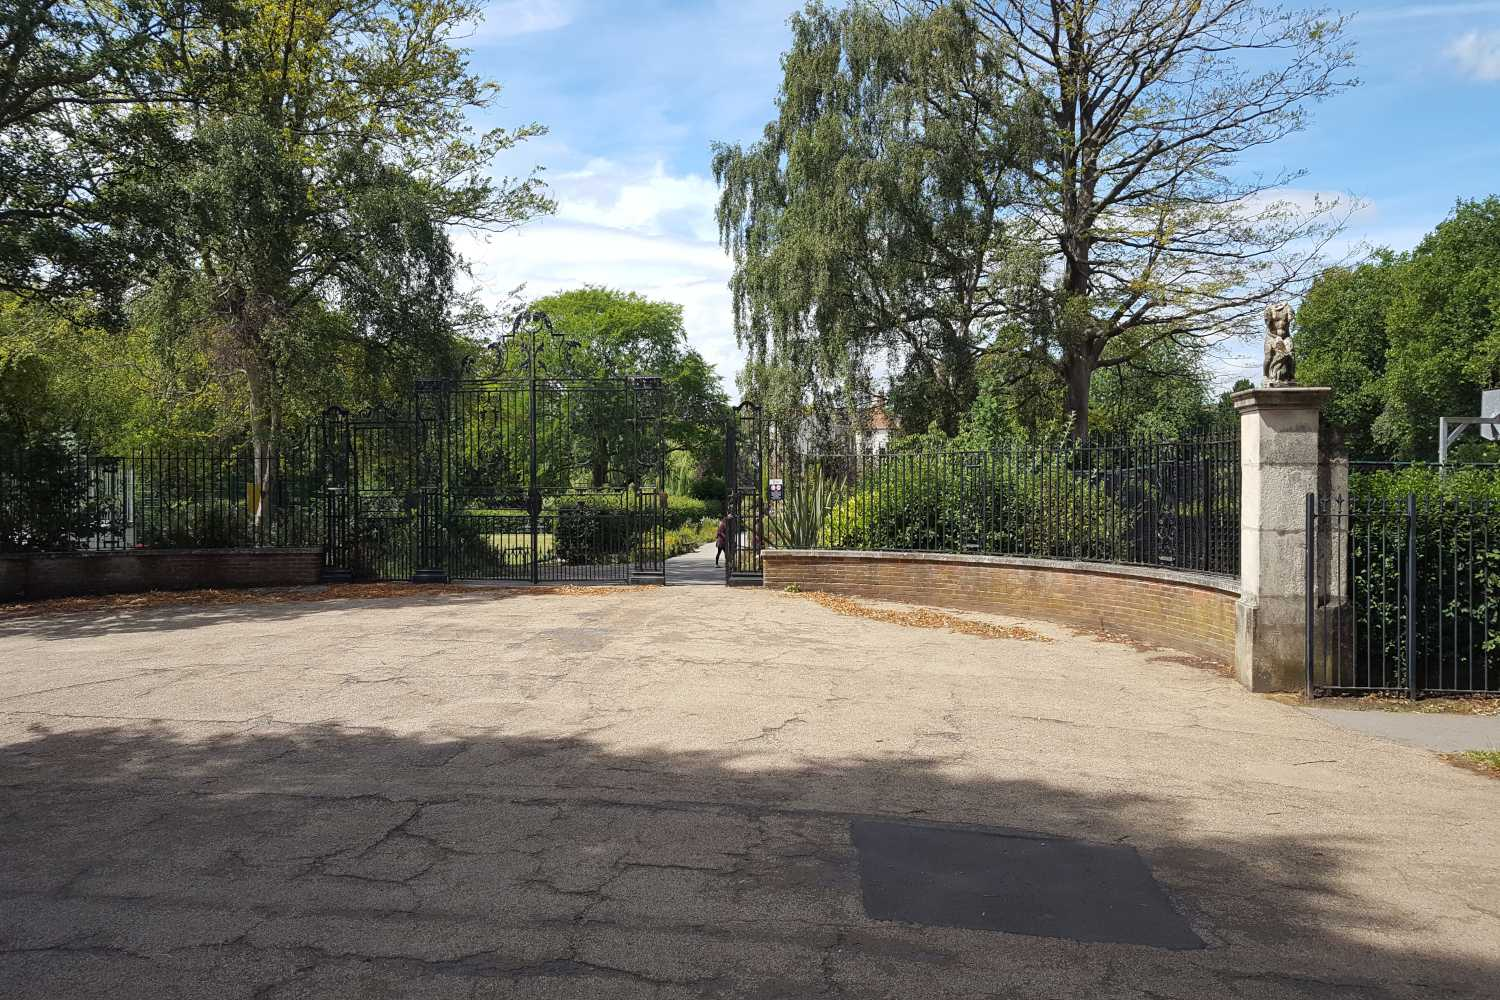 Entrance gates to Rowntree Park in York